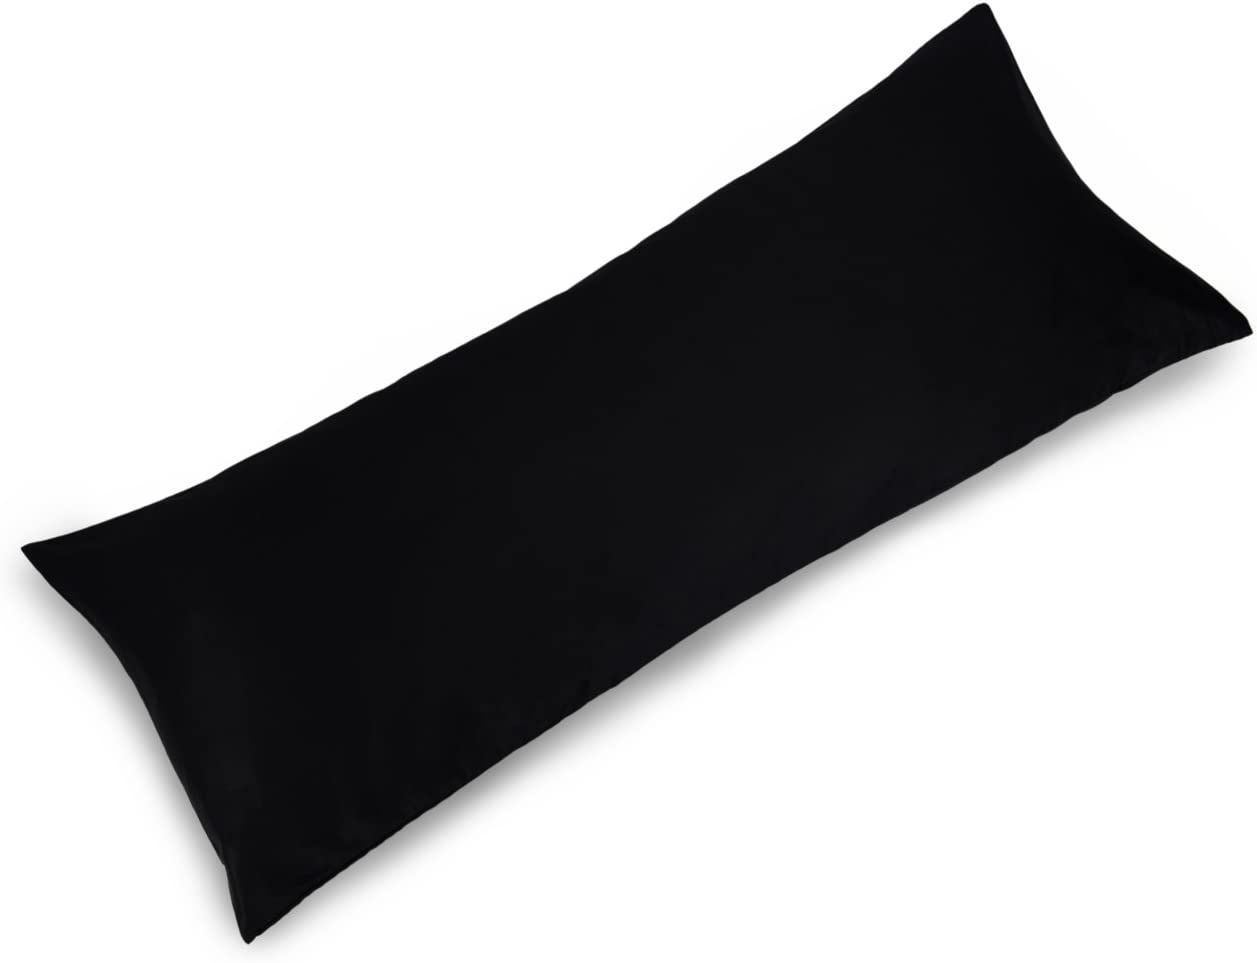 YAROO 21x48 Body Pillow Cover,Body Pillow Case Non-Zippered Enclosure,400 Thread Count,100% Cotton,Solid,Black.